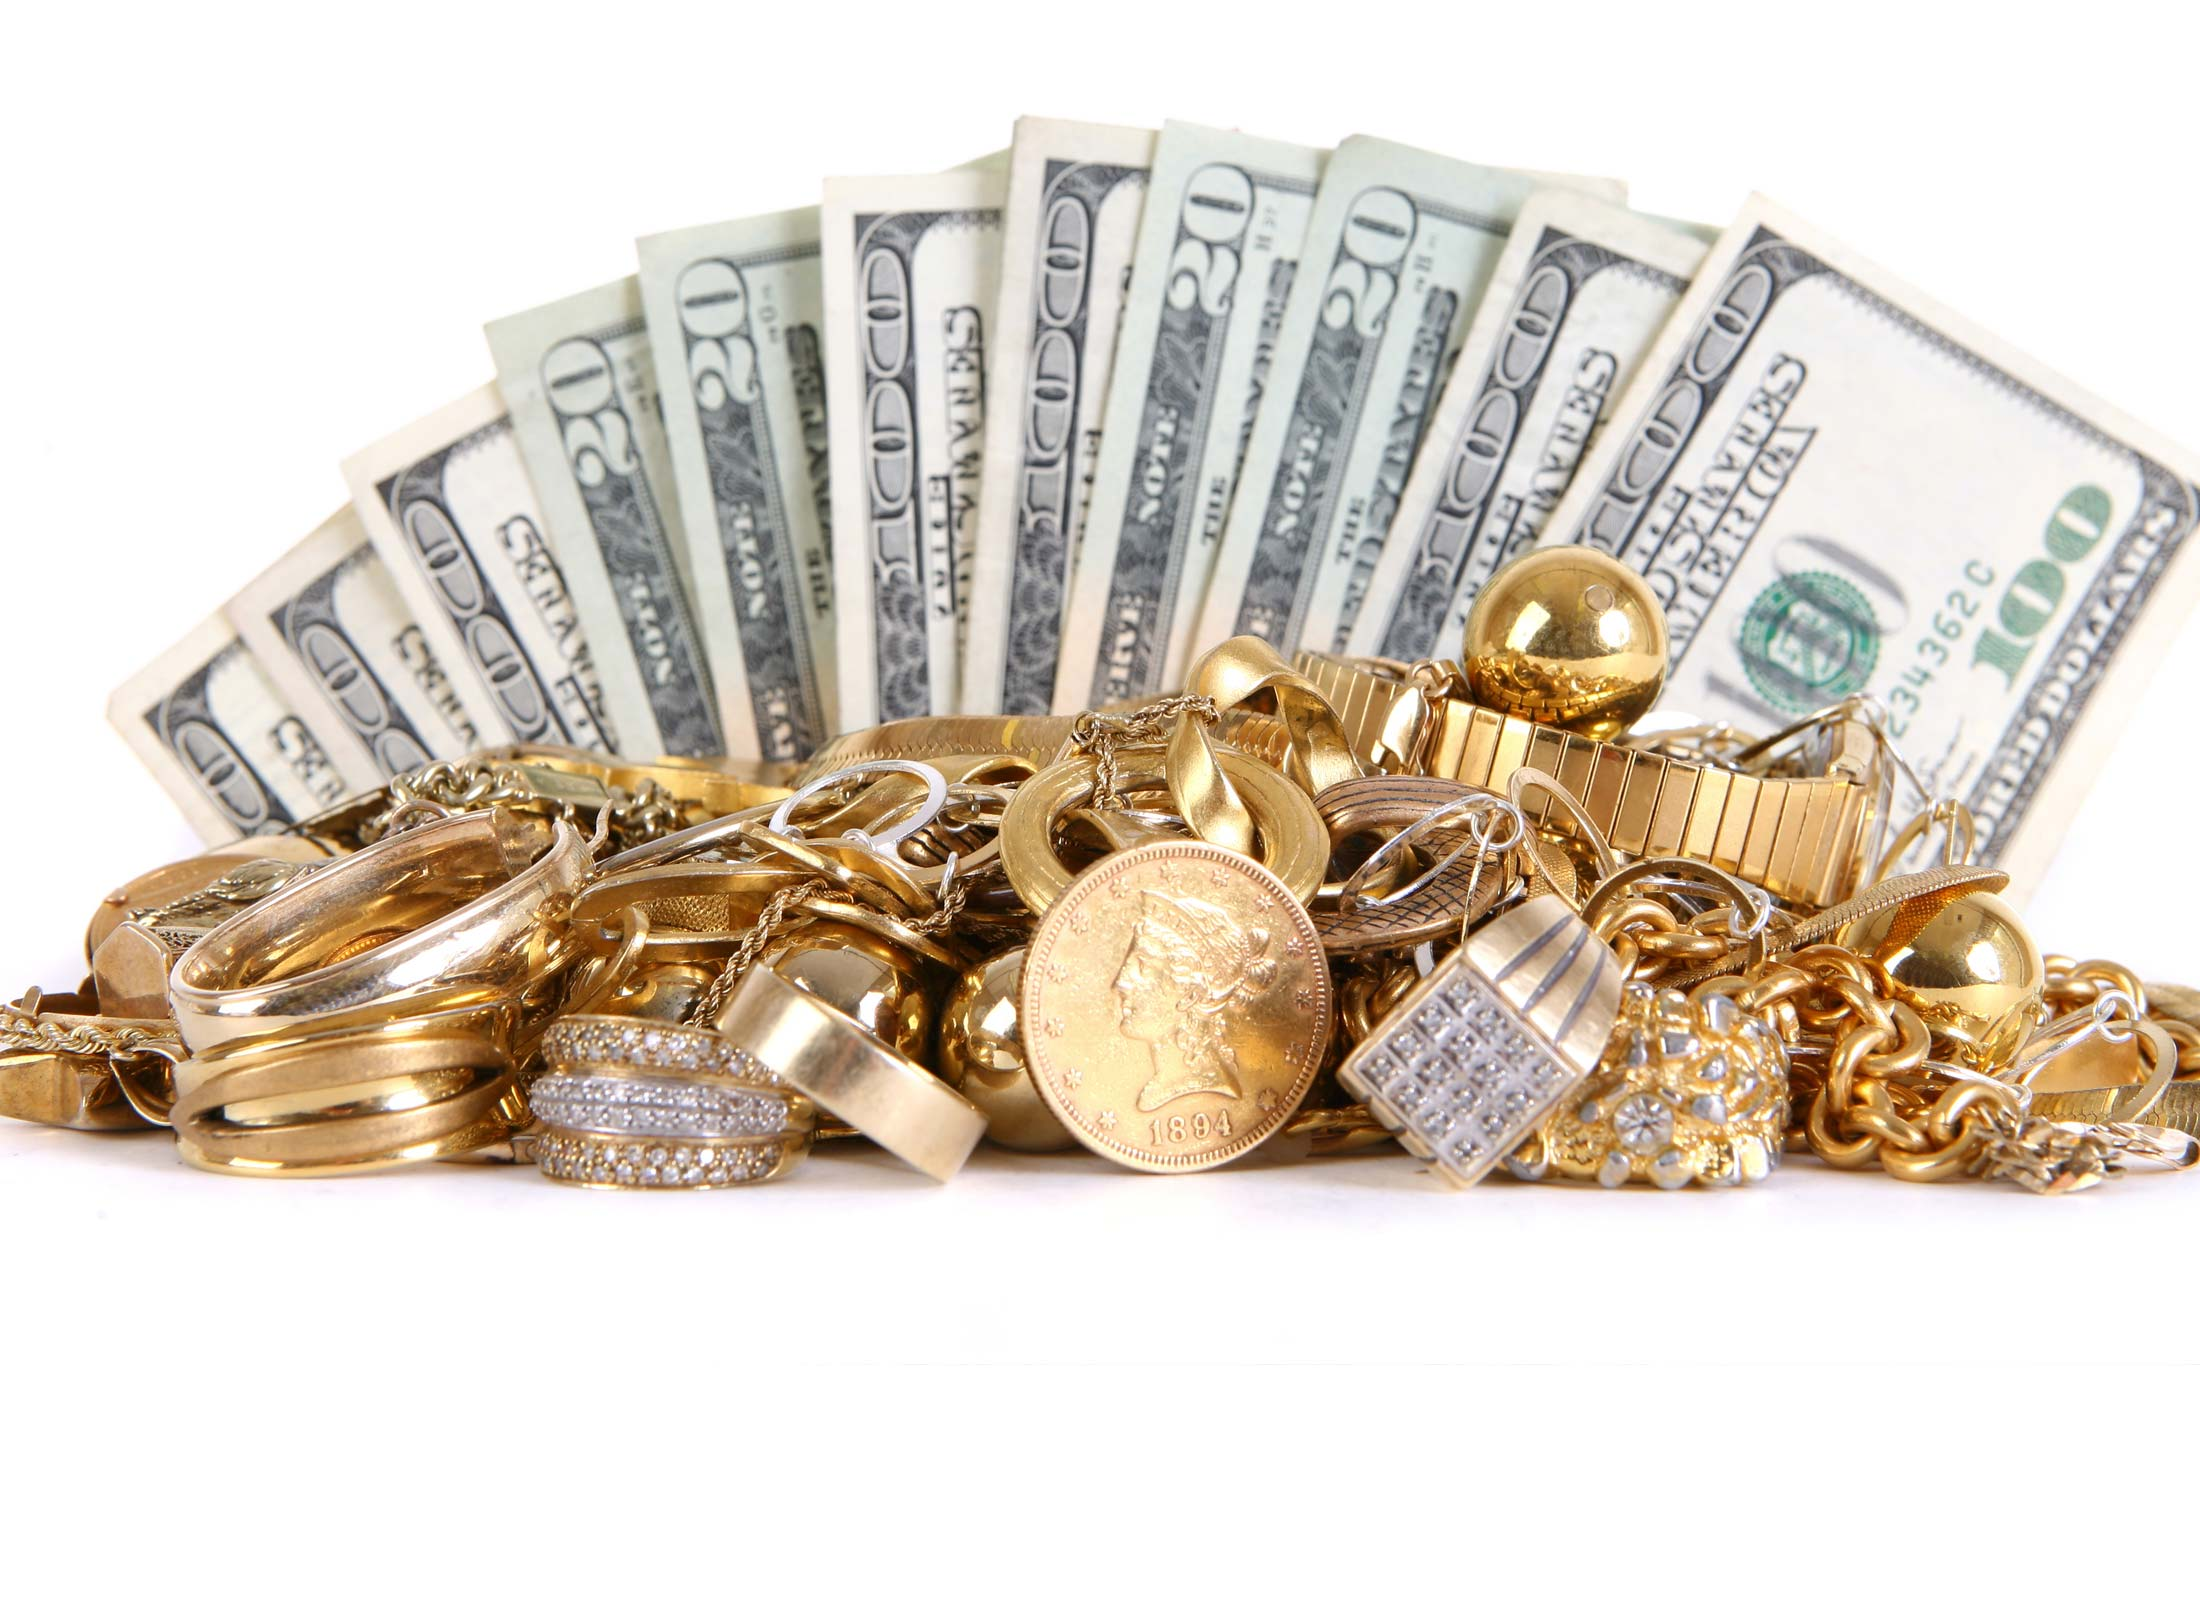 Green hills jewelry and loan 615 516 6001 nashville for Local jewelry stores near me